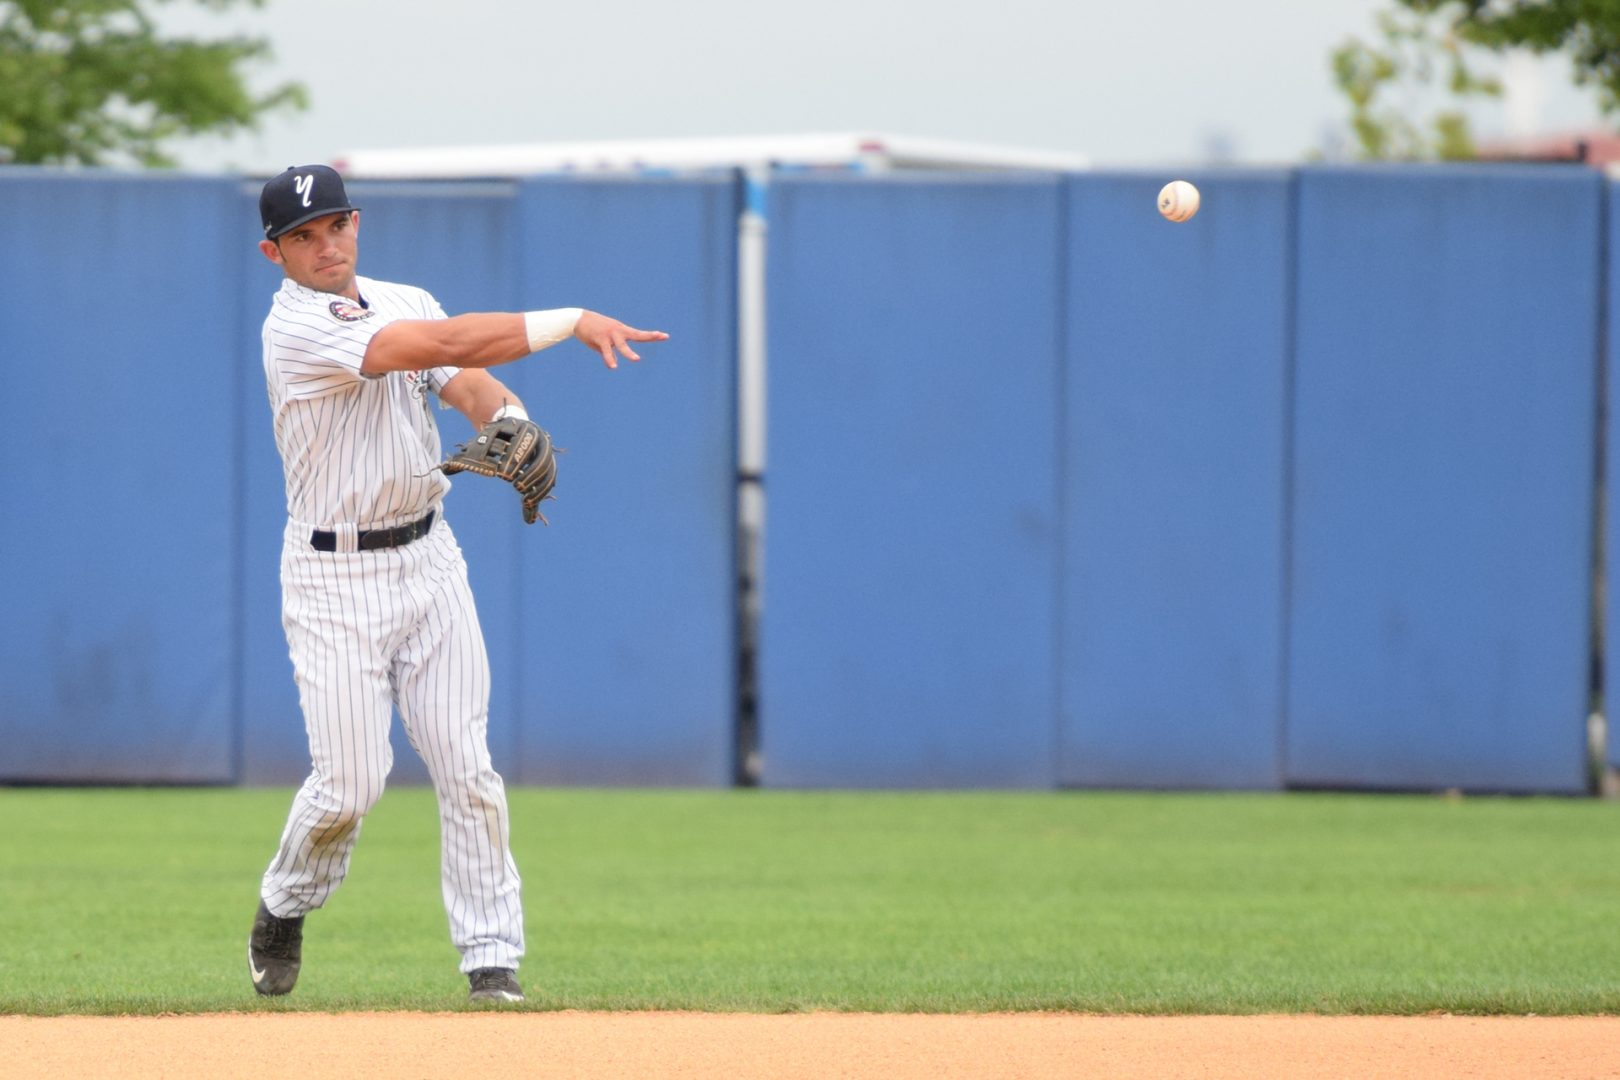 Second baseman Chris Godinez fields the ball and throws to first to end the first inning. (Robert M. Pimpsner)